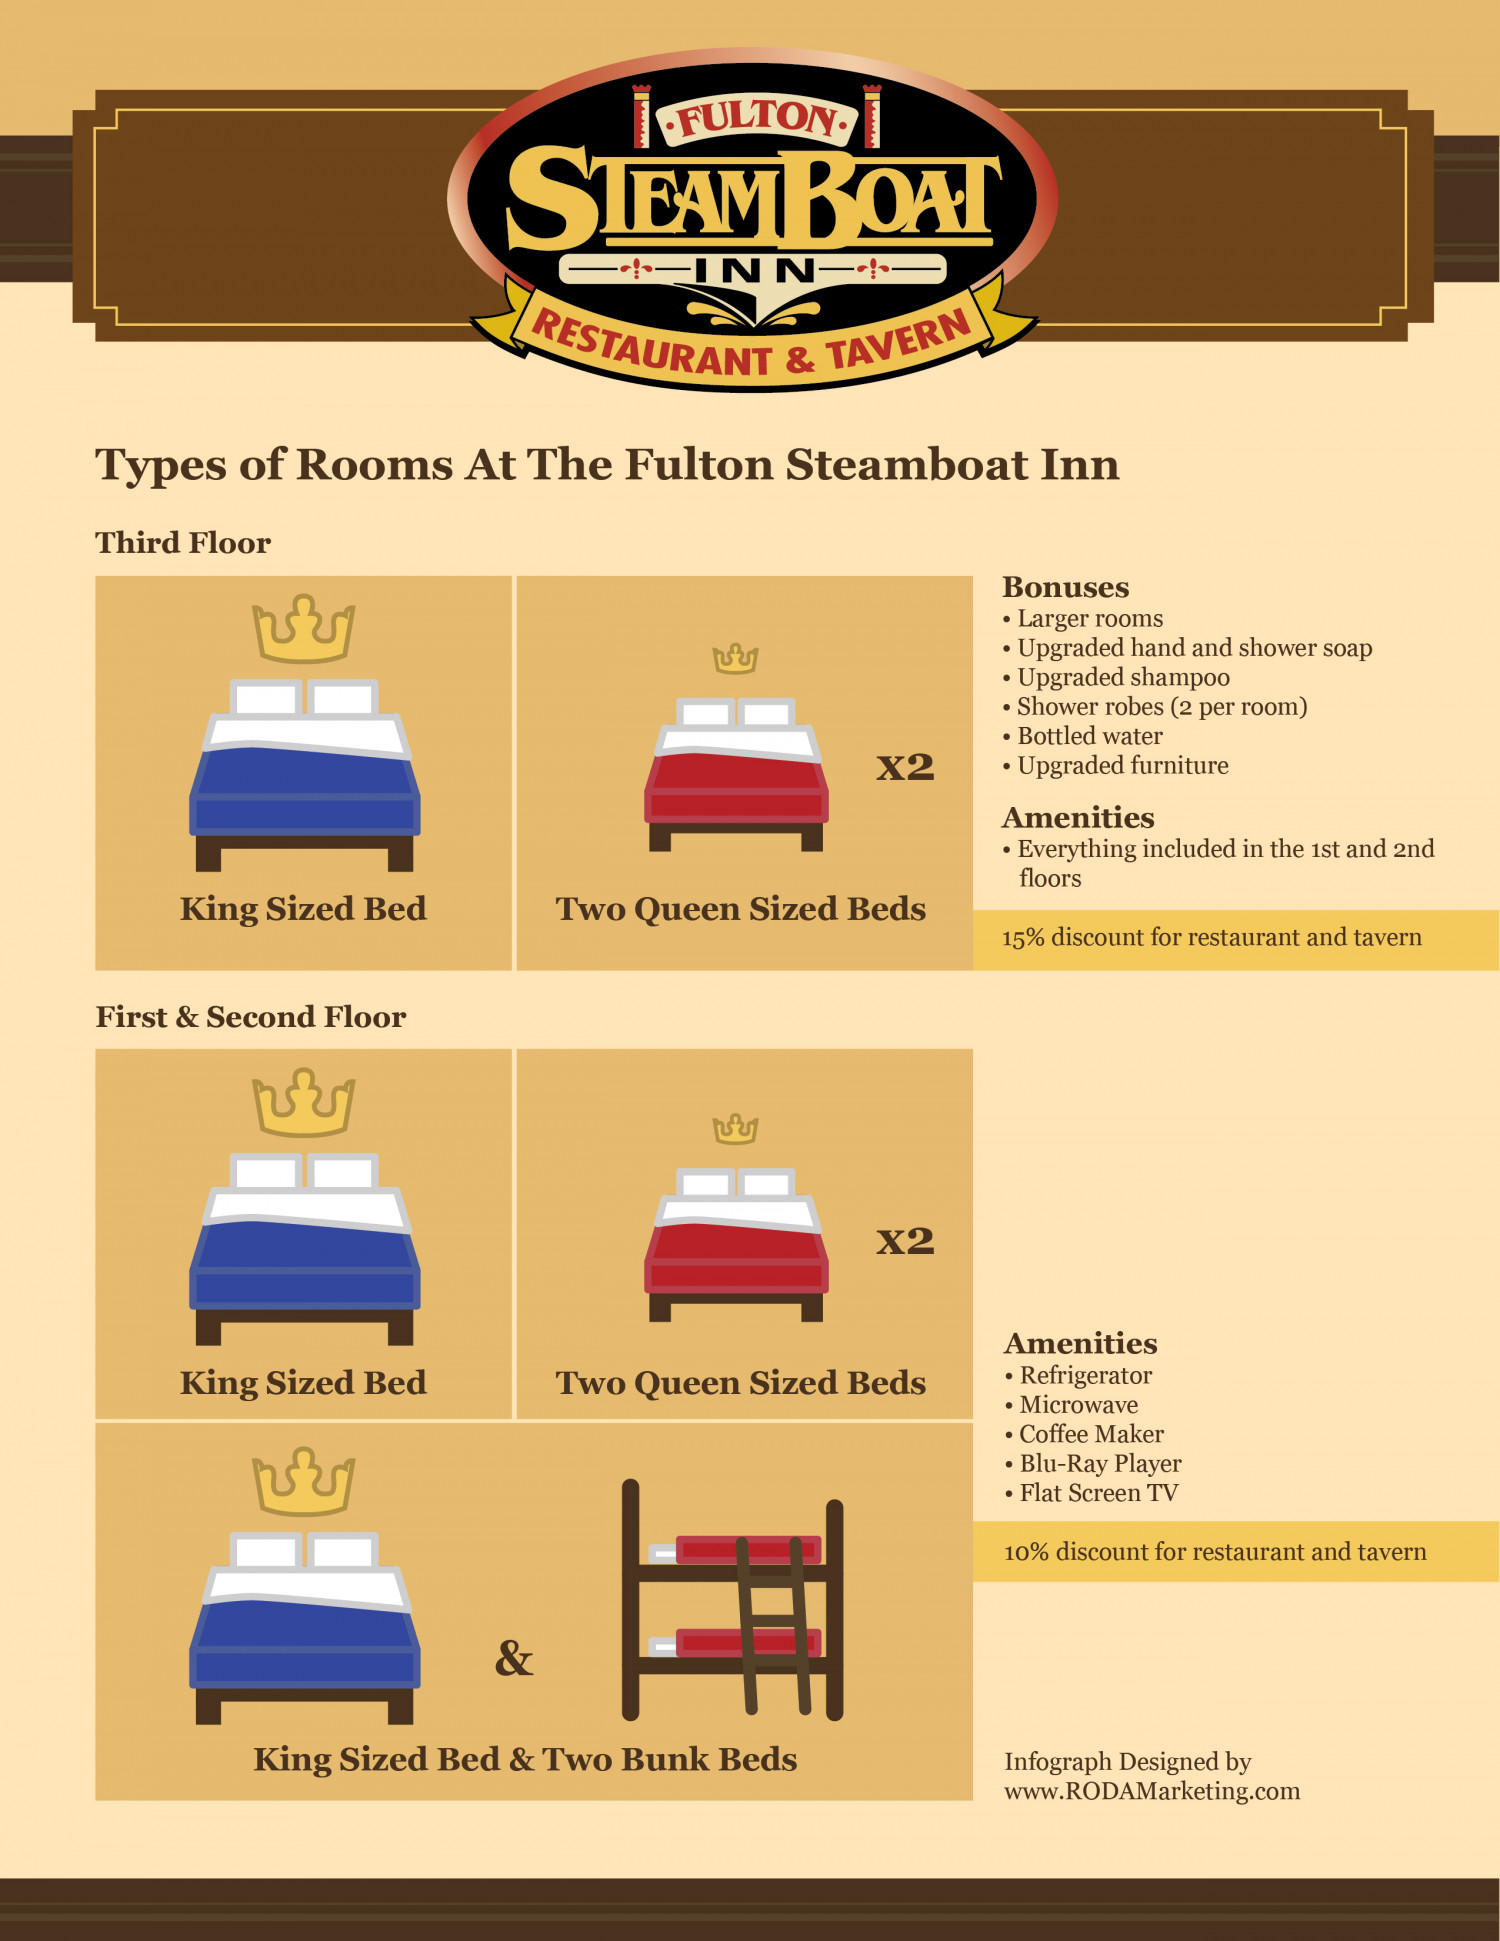 Types of Rooms At The Fulton Steamboat Inn Infographic